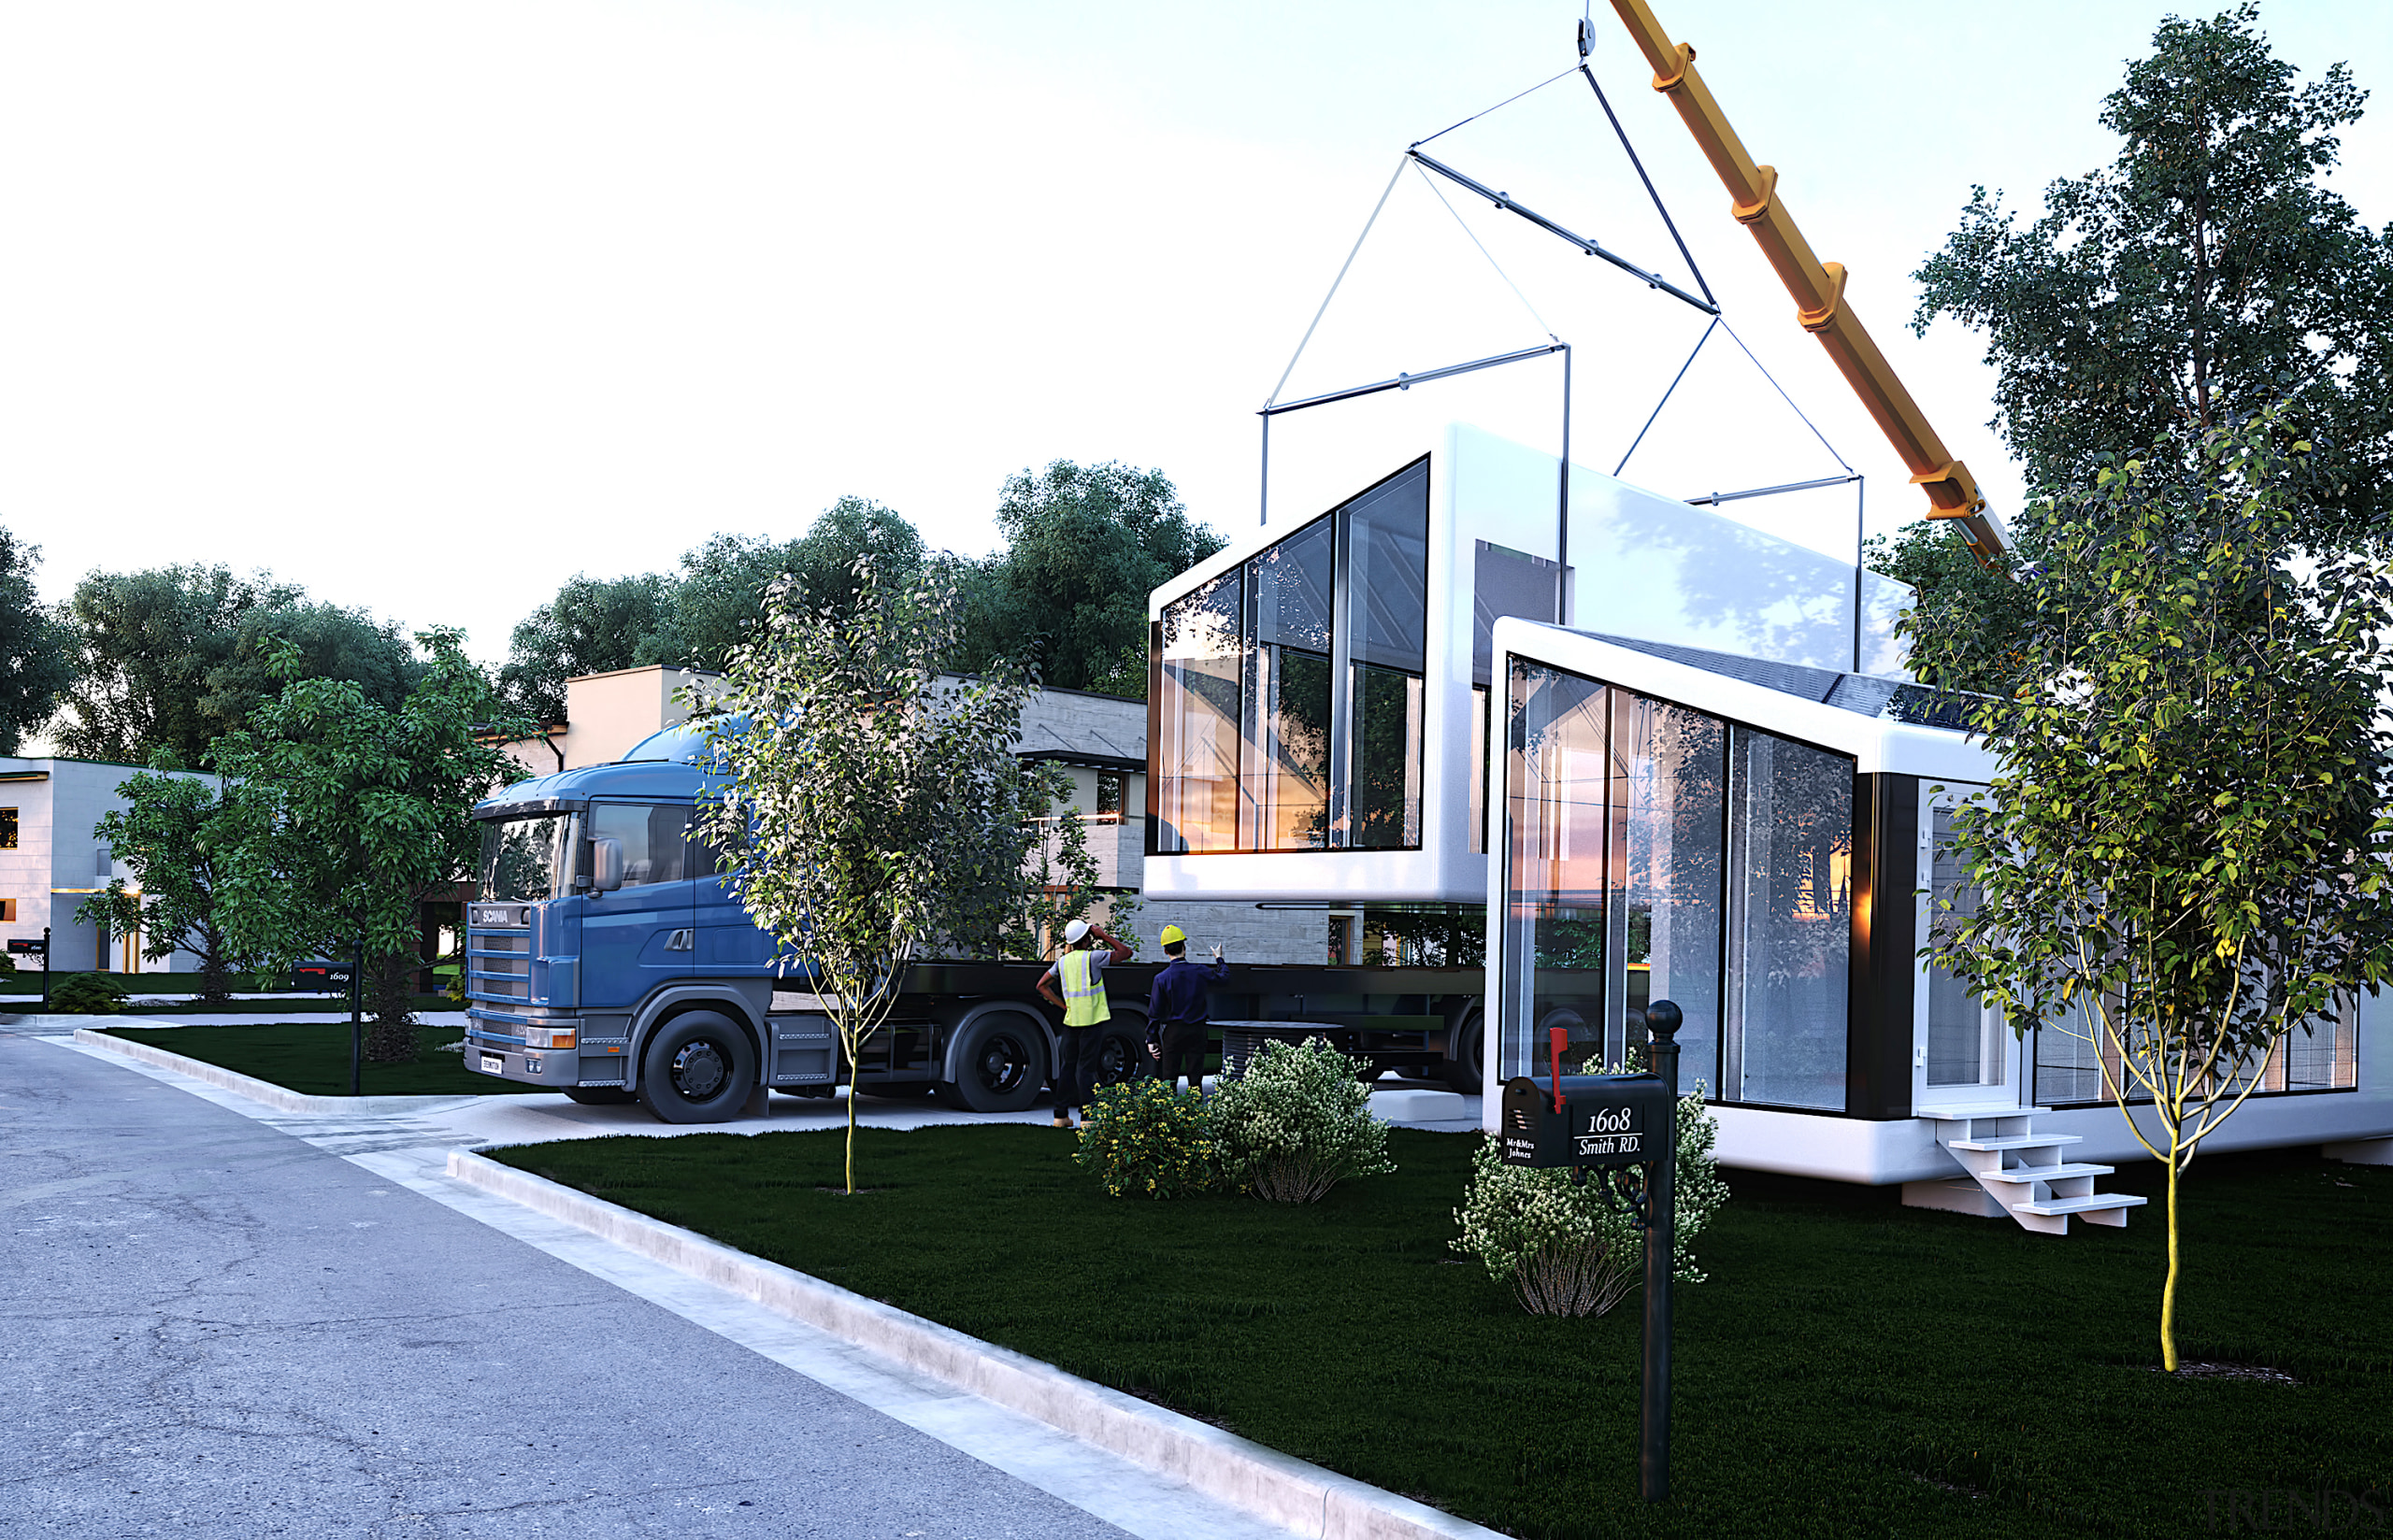 Pulling the plug - architecture   building   architecture, building, cottage, facade, grass, home, house, property, real estate, residential area, roof, siding, transport, tree, vehicle, white